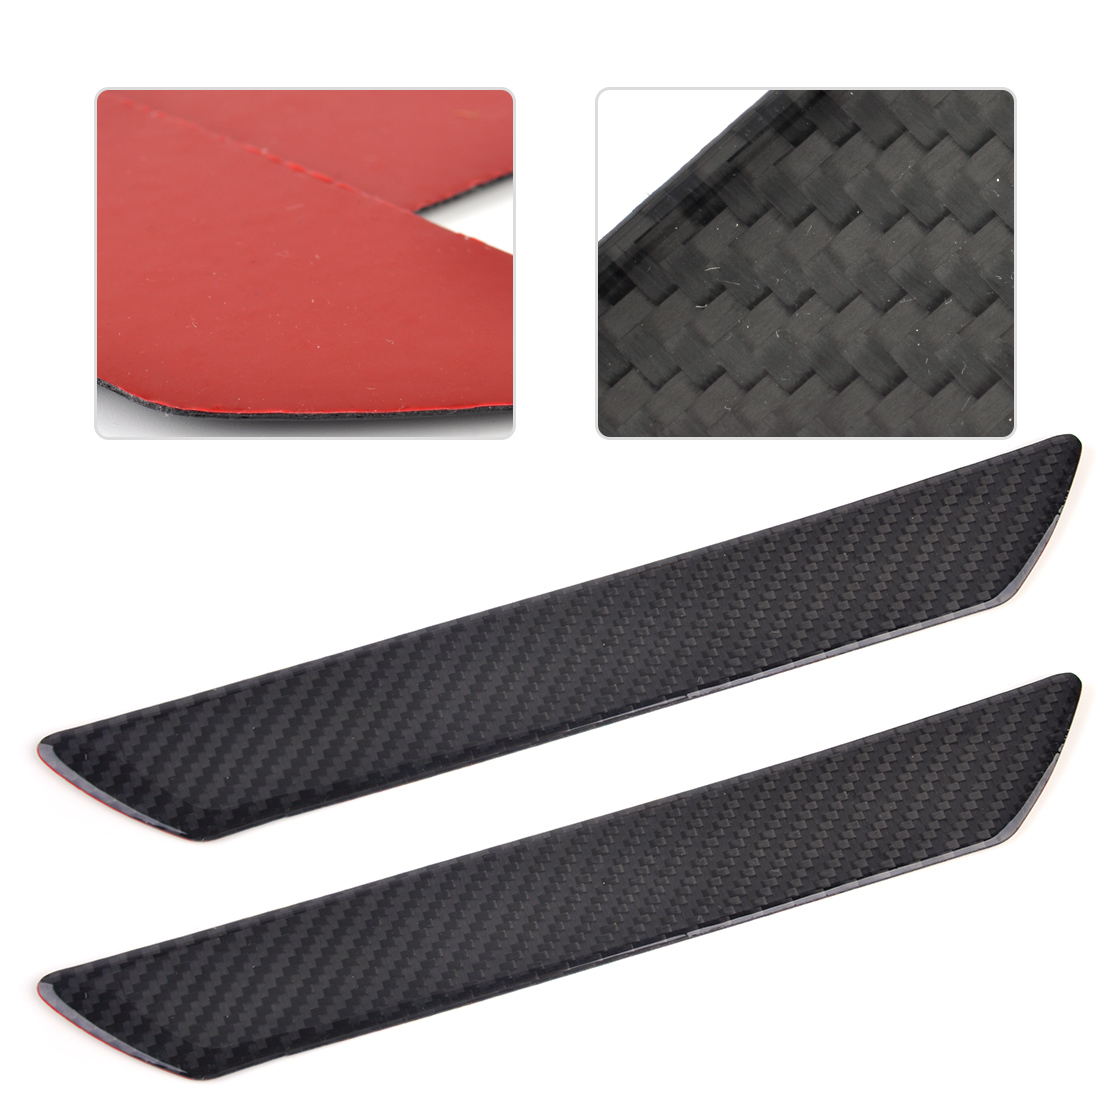 DWCX 2x Universal Car Styling Carbon Fiber Car Scuff Plate Door Sill Protect Trim Panel Cover Protect Guard For VW Ford Toyota sports car door sill scuff plate guard sills for 2014 mazda 6 atenza m6